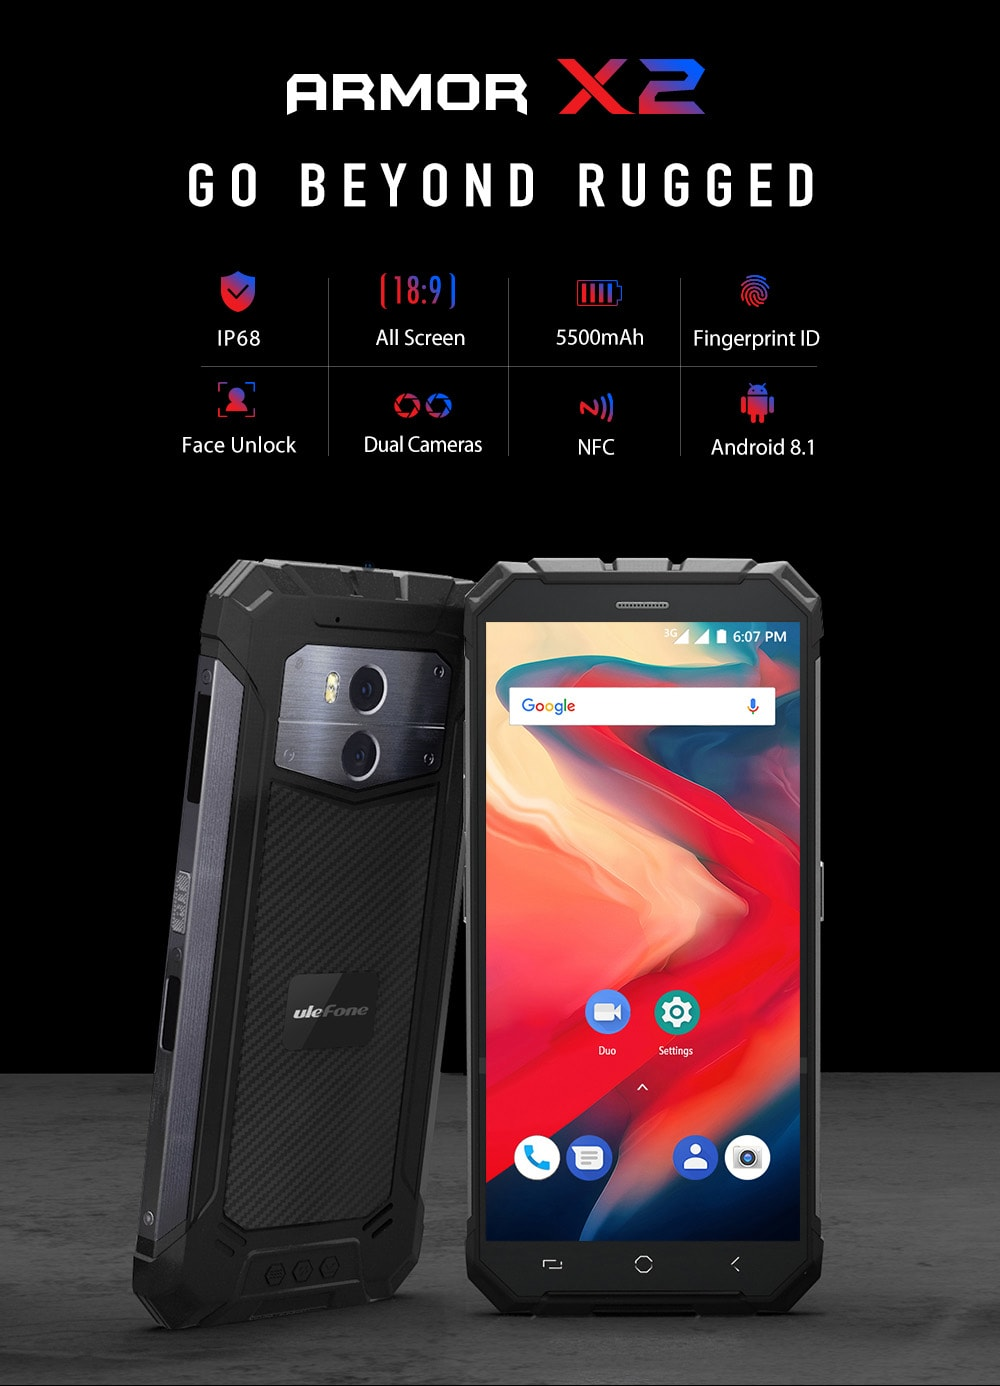 Ulefone Armor X2 3G Phablet 5.5 inch Android 8.1 MT6580 Quad-core 1.3GHz 2GB RAM 16GB ROM 13.0MP + 5.0MP Rear Camera Fingerprint Sensor 5500mAh Built-in - Gray European Union